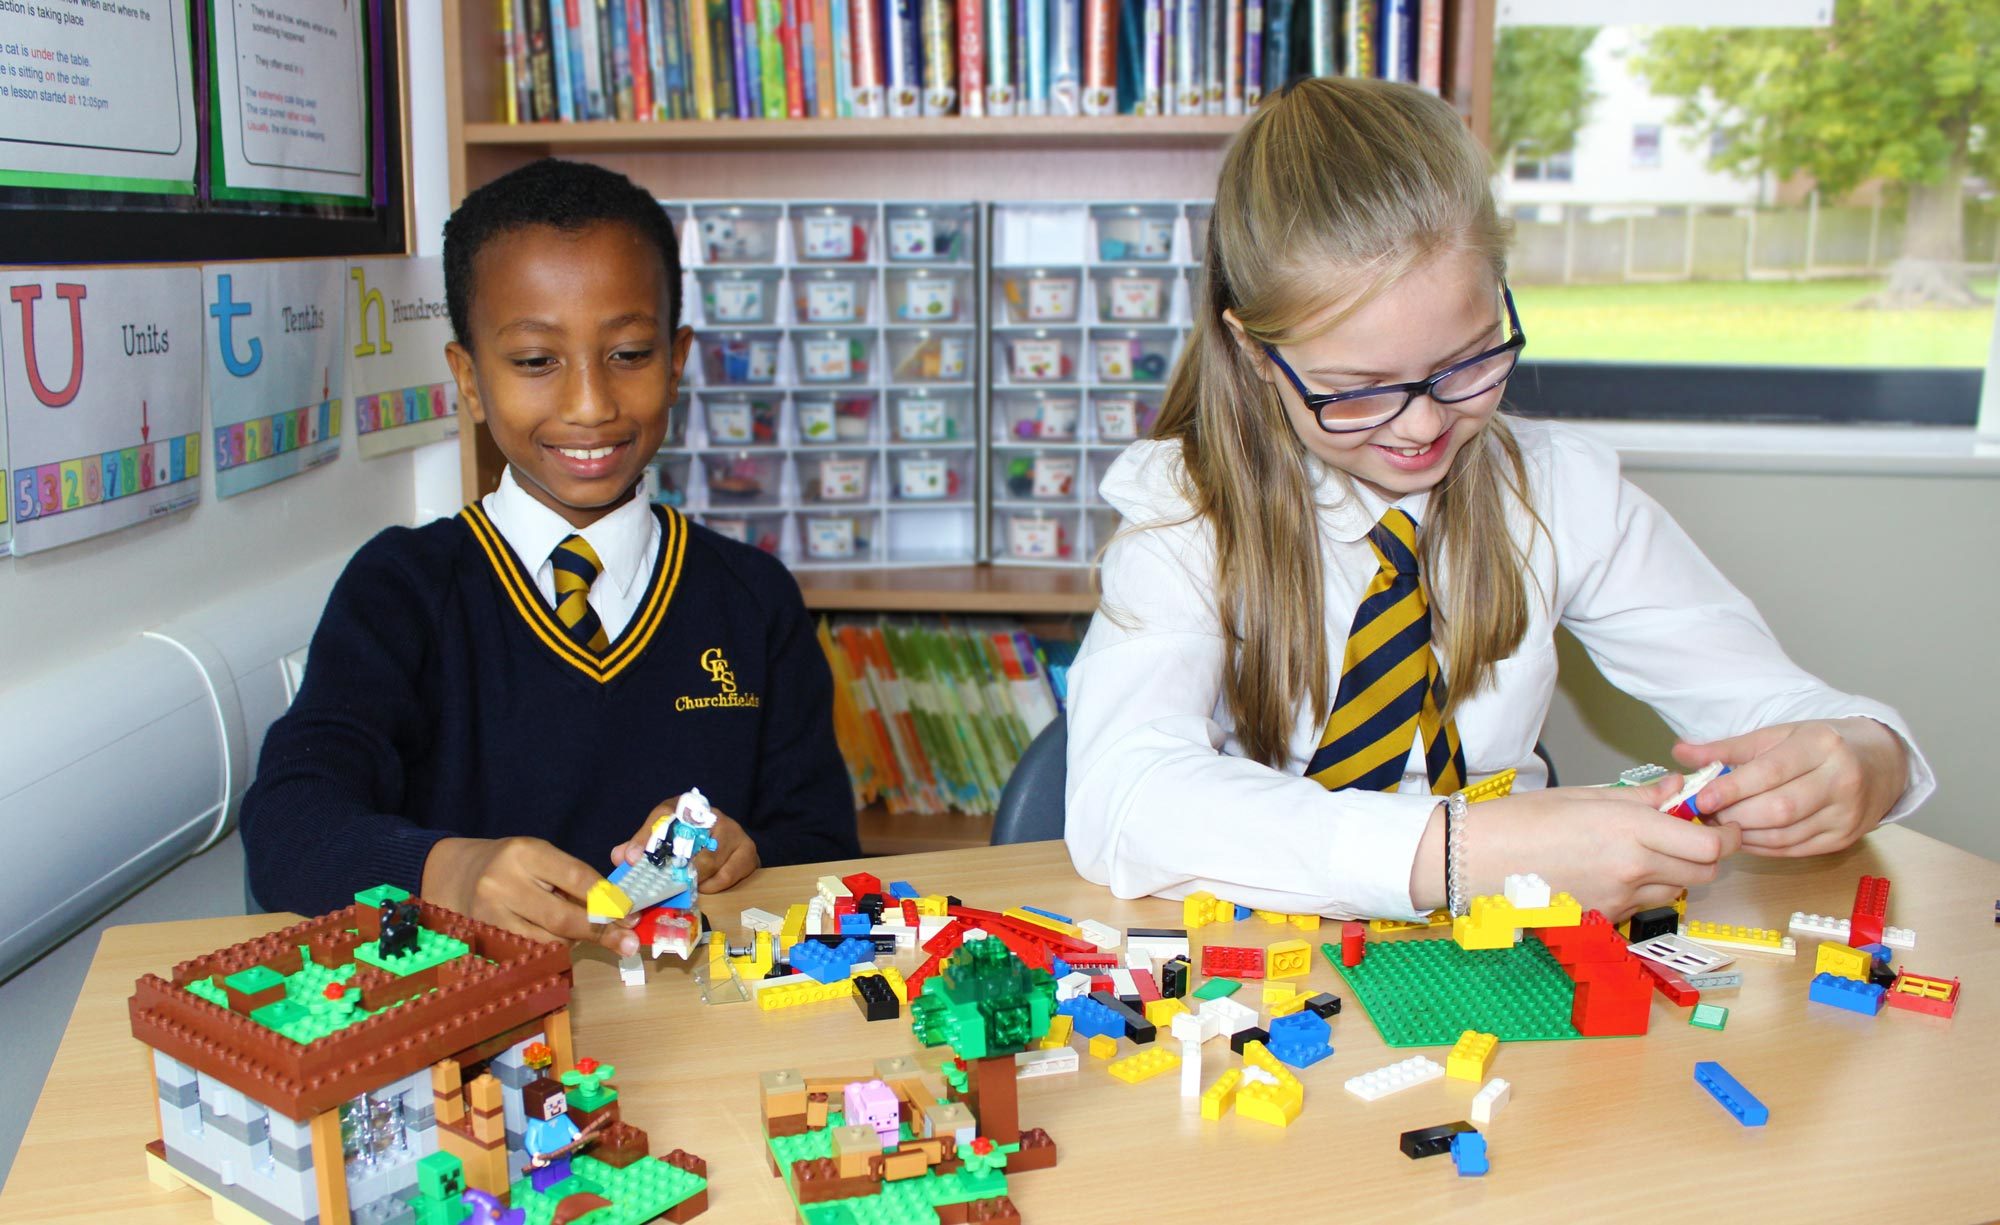 Pupils playing with lego at the Breakfast Club